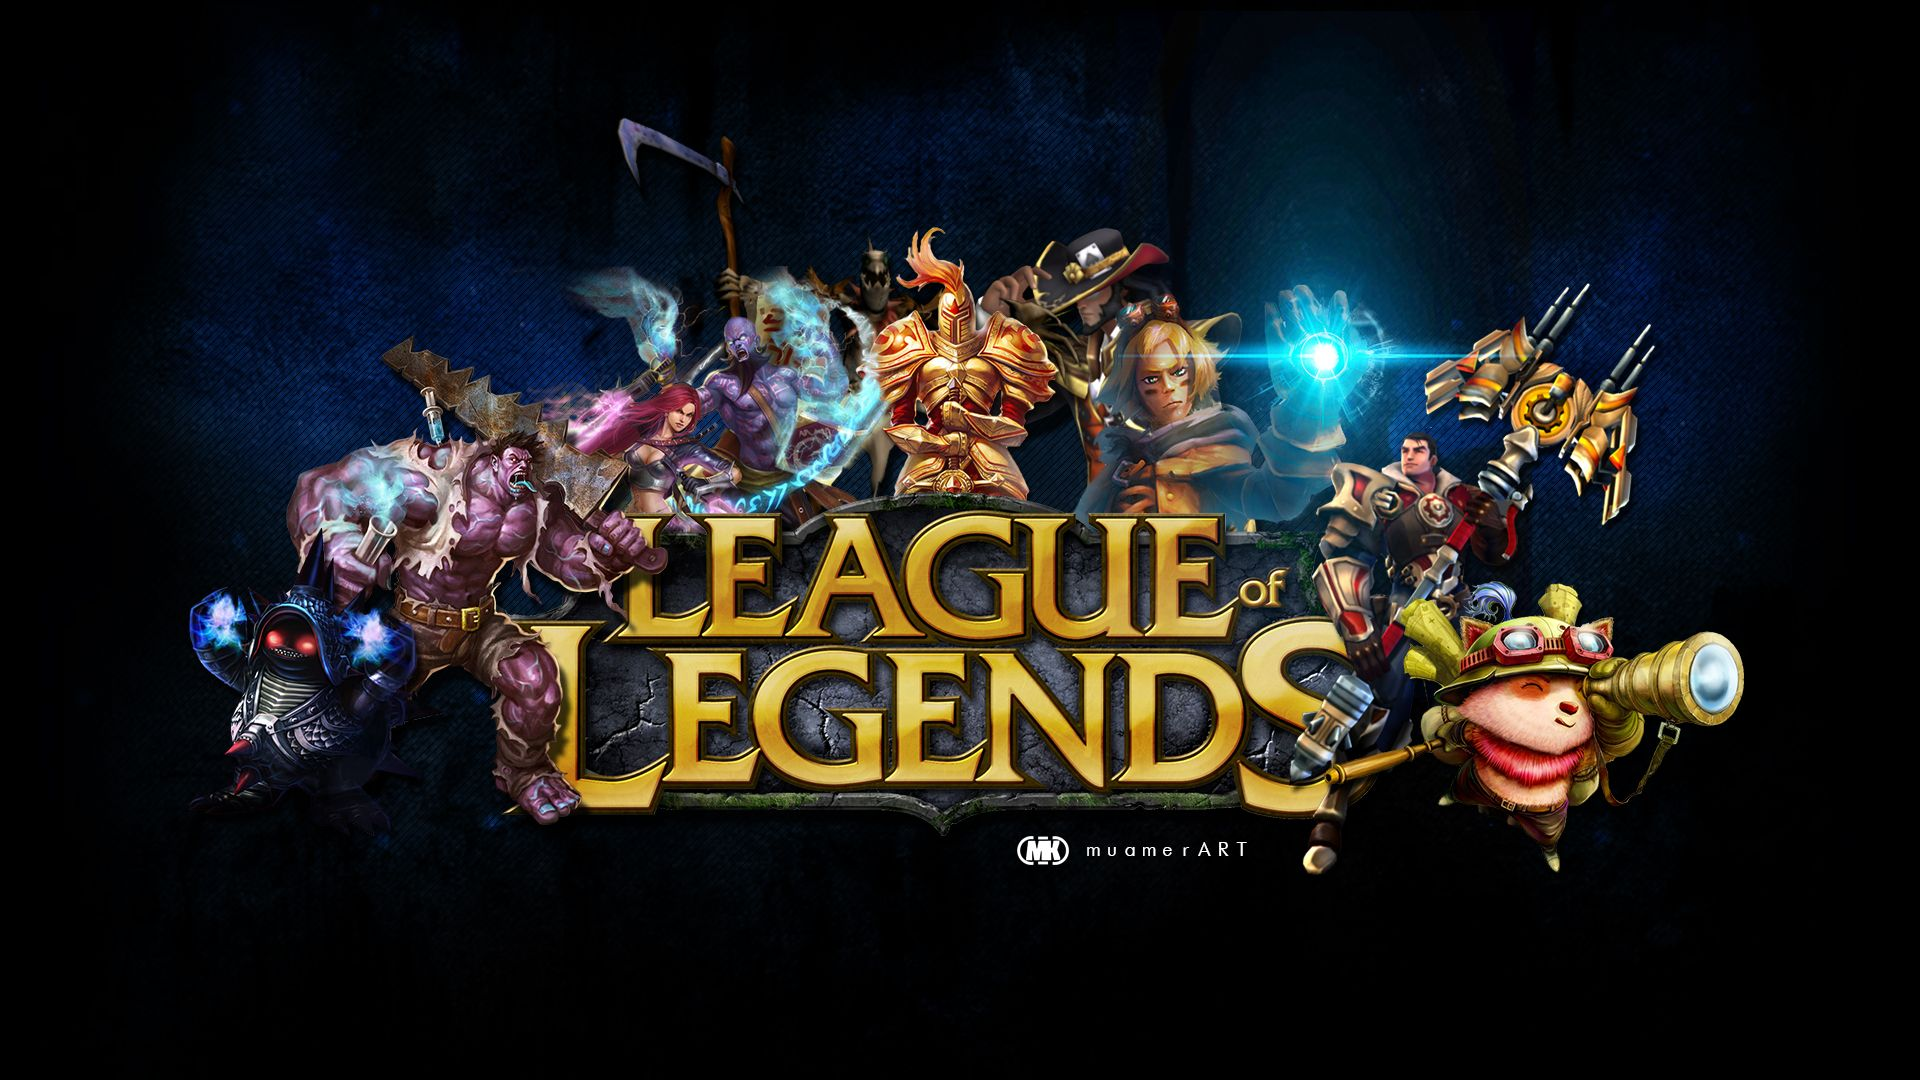 X League Of Legends Wallpapers Hd Desktop Backgrounds League Of Legends Call Of Duty Ghosts League